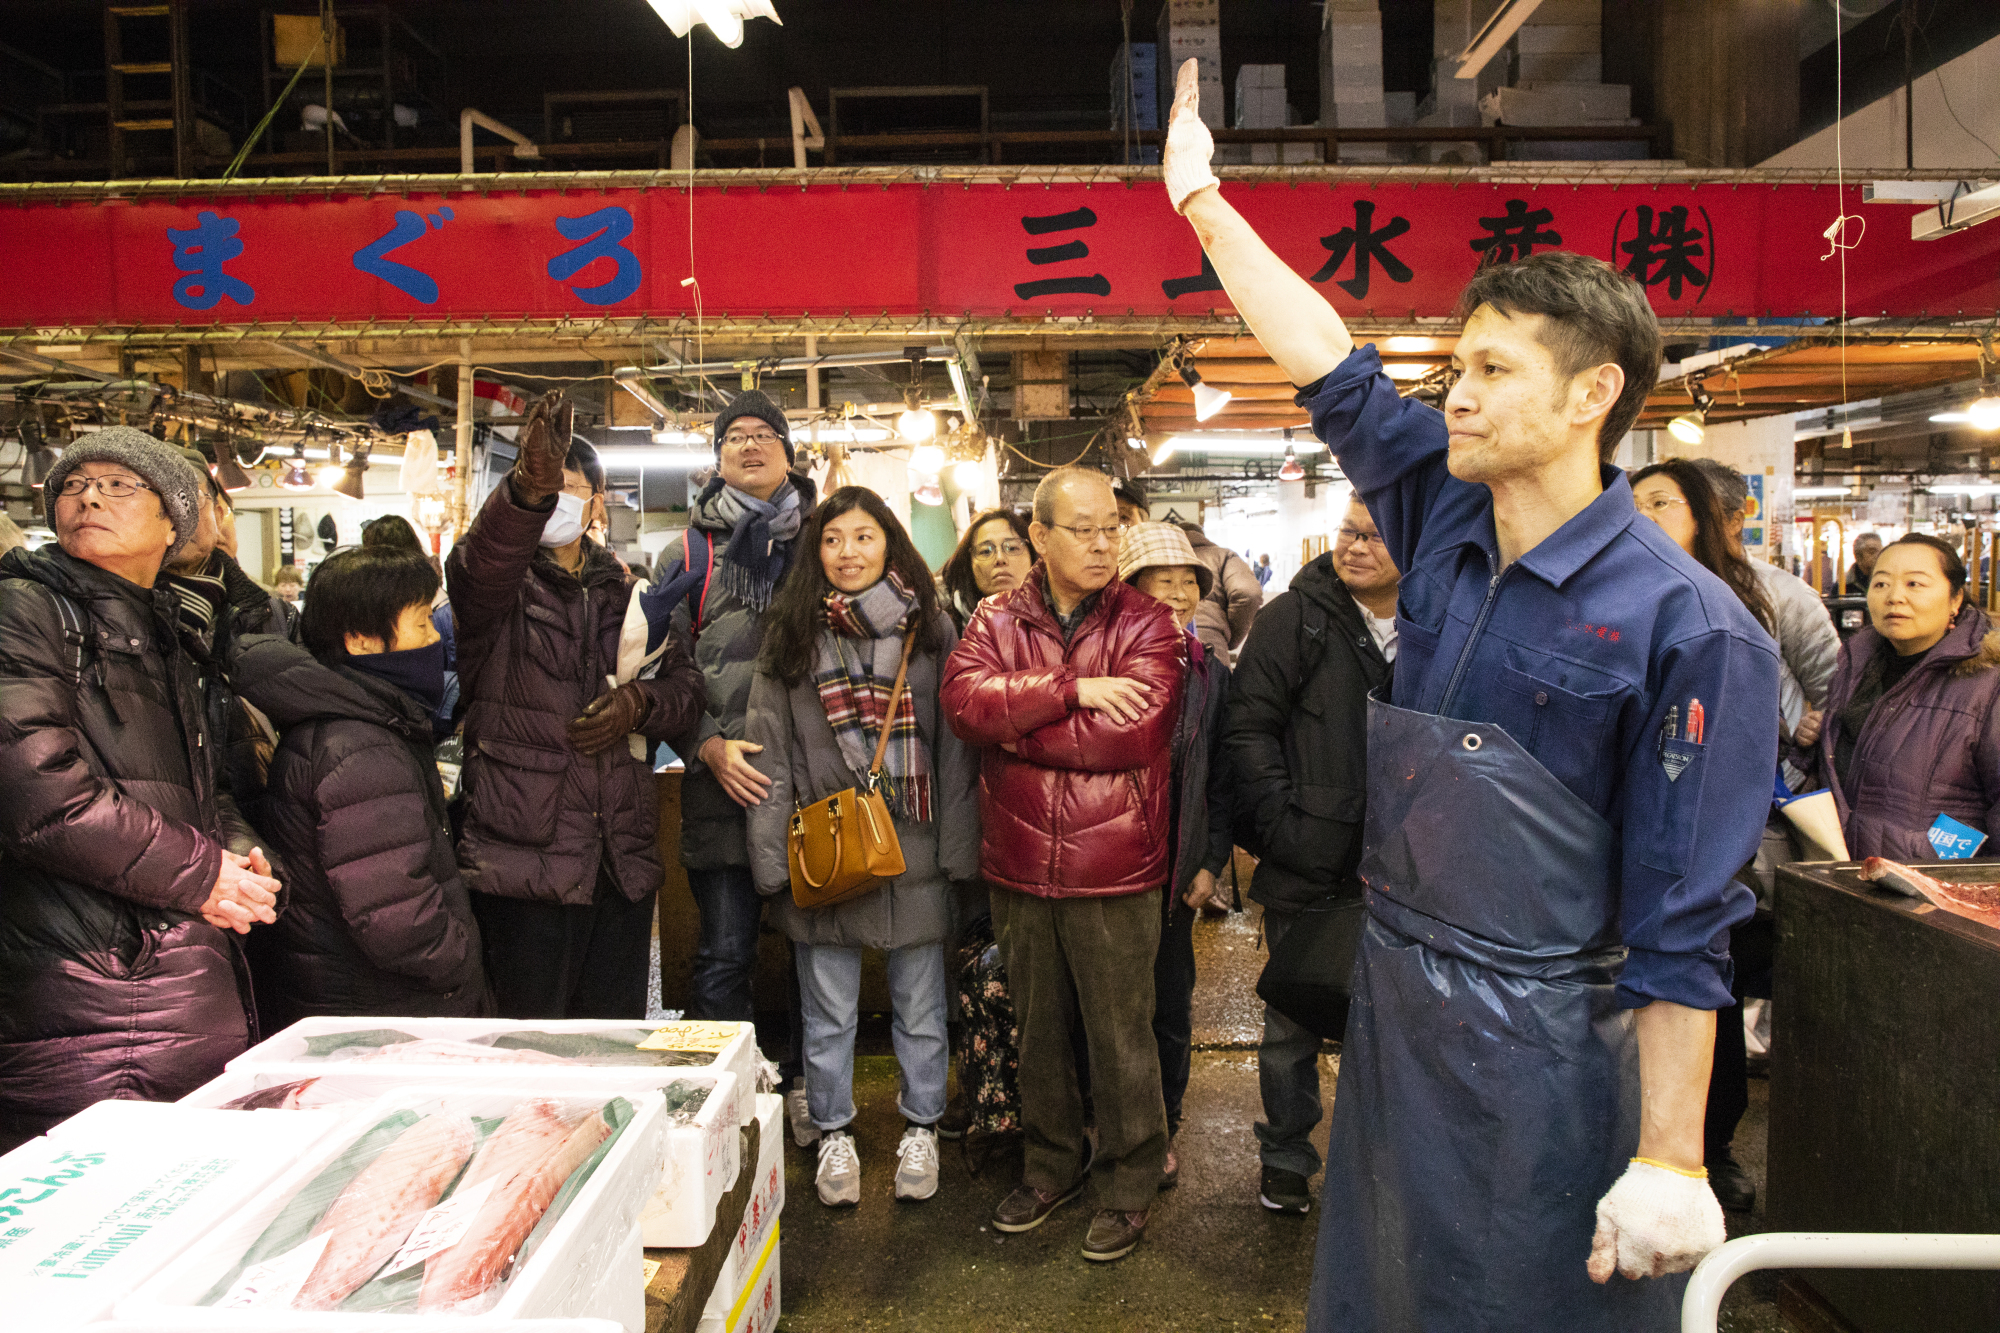 Hands up: While the sakutori process is underway, the head, the kama section beneath the gills and around the pectoral fins, and the nakaochi meat scraped off the bones are put up for auction. Bidding is made simple for lay participants, who raise their hands to signal they agree to the price called out by the auctioneer. If there are still multiple bidders after the price has risen to a certain level, the buyer is decided by a quick game of rock-paper-scissors.